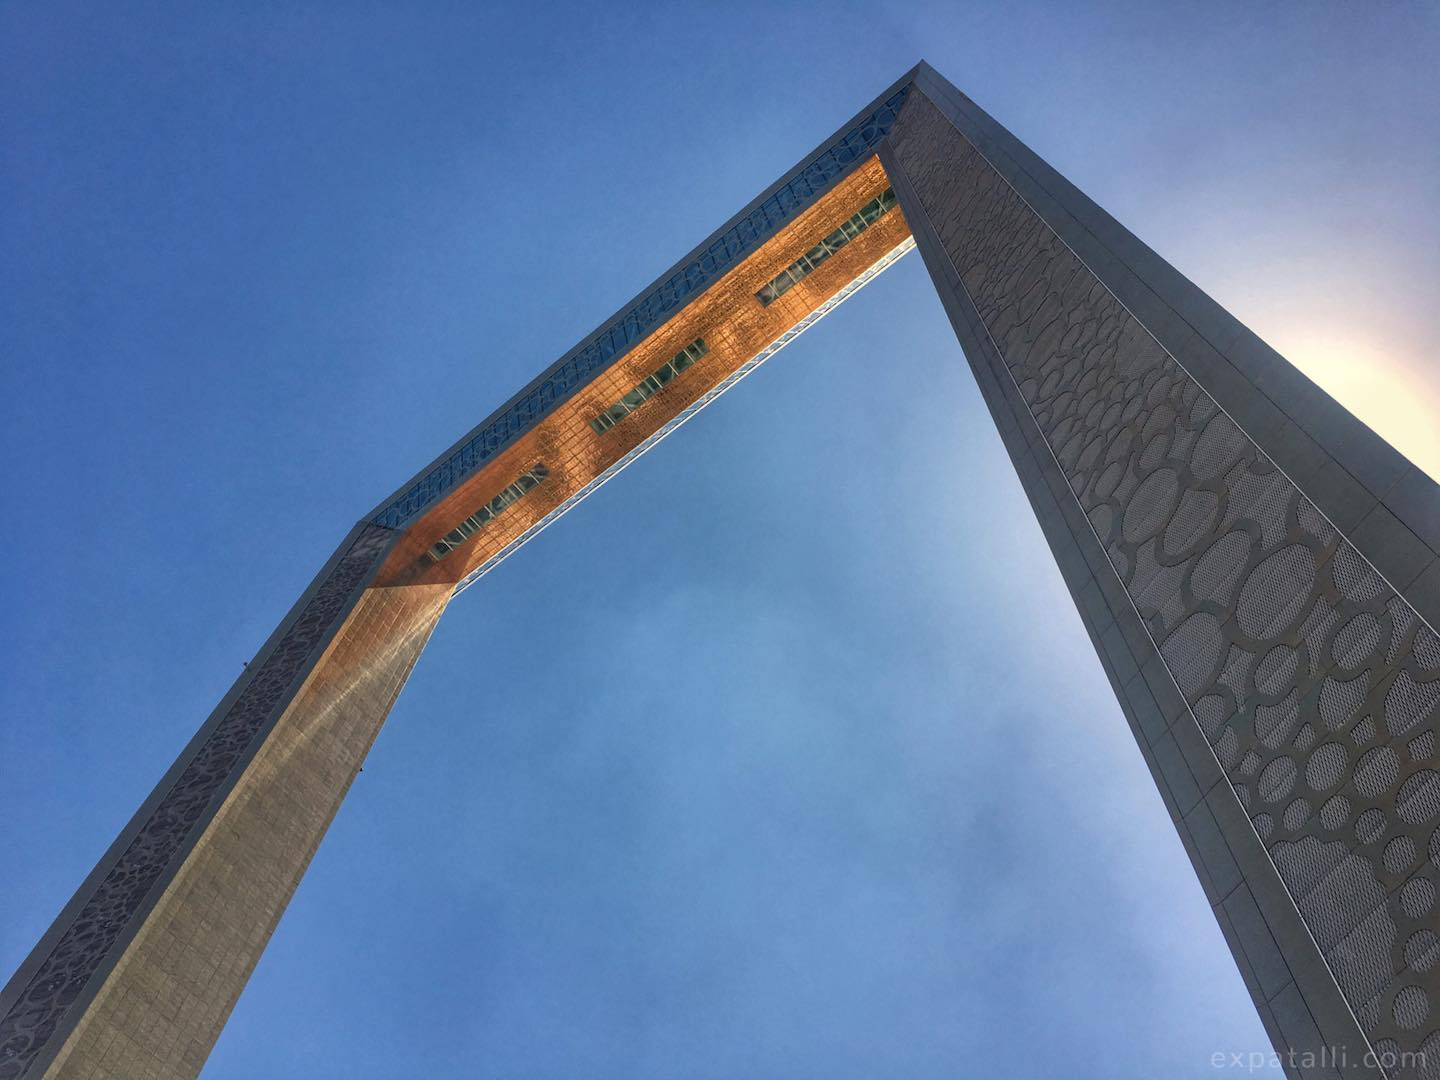 Top of the Dubai Frame